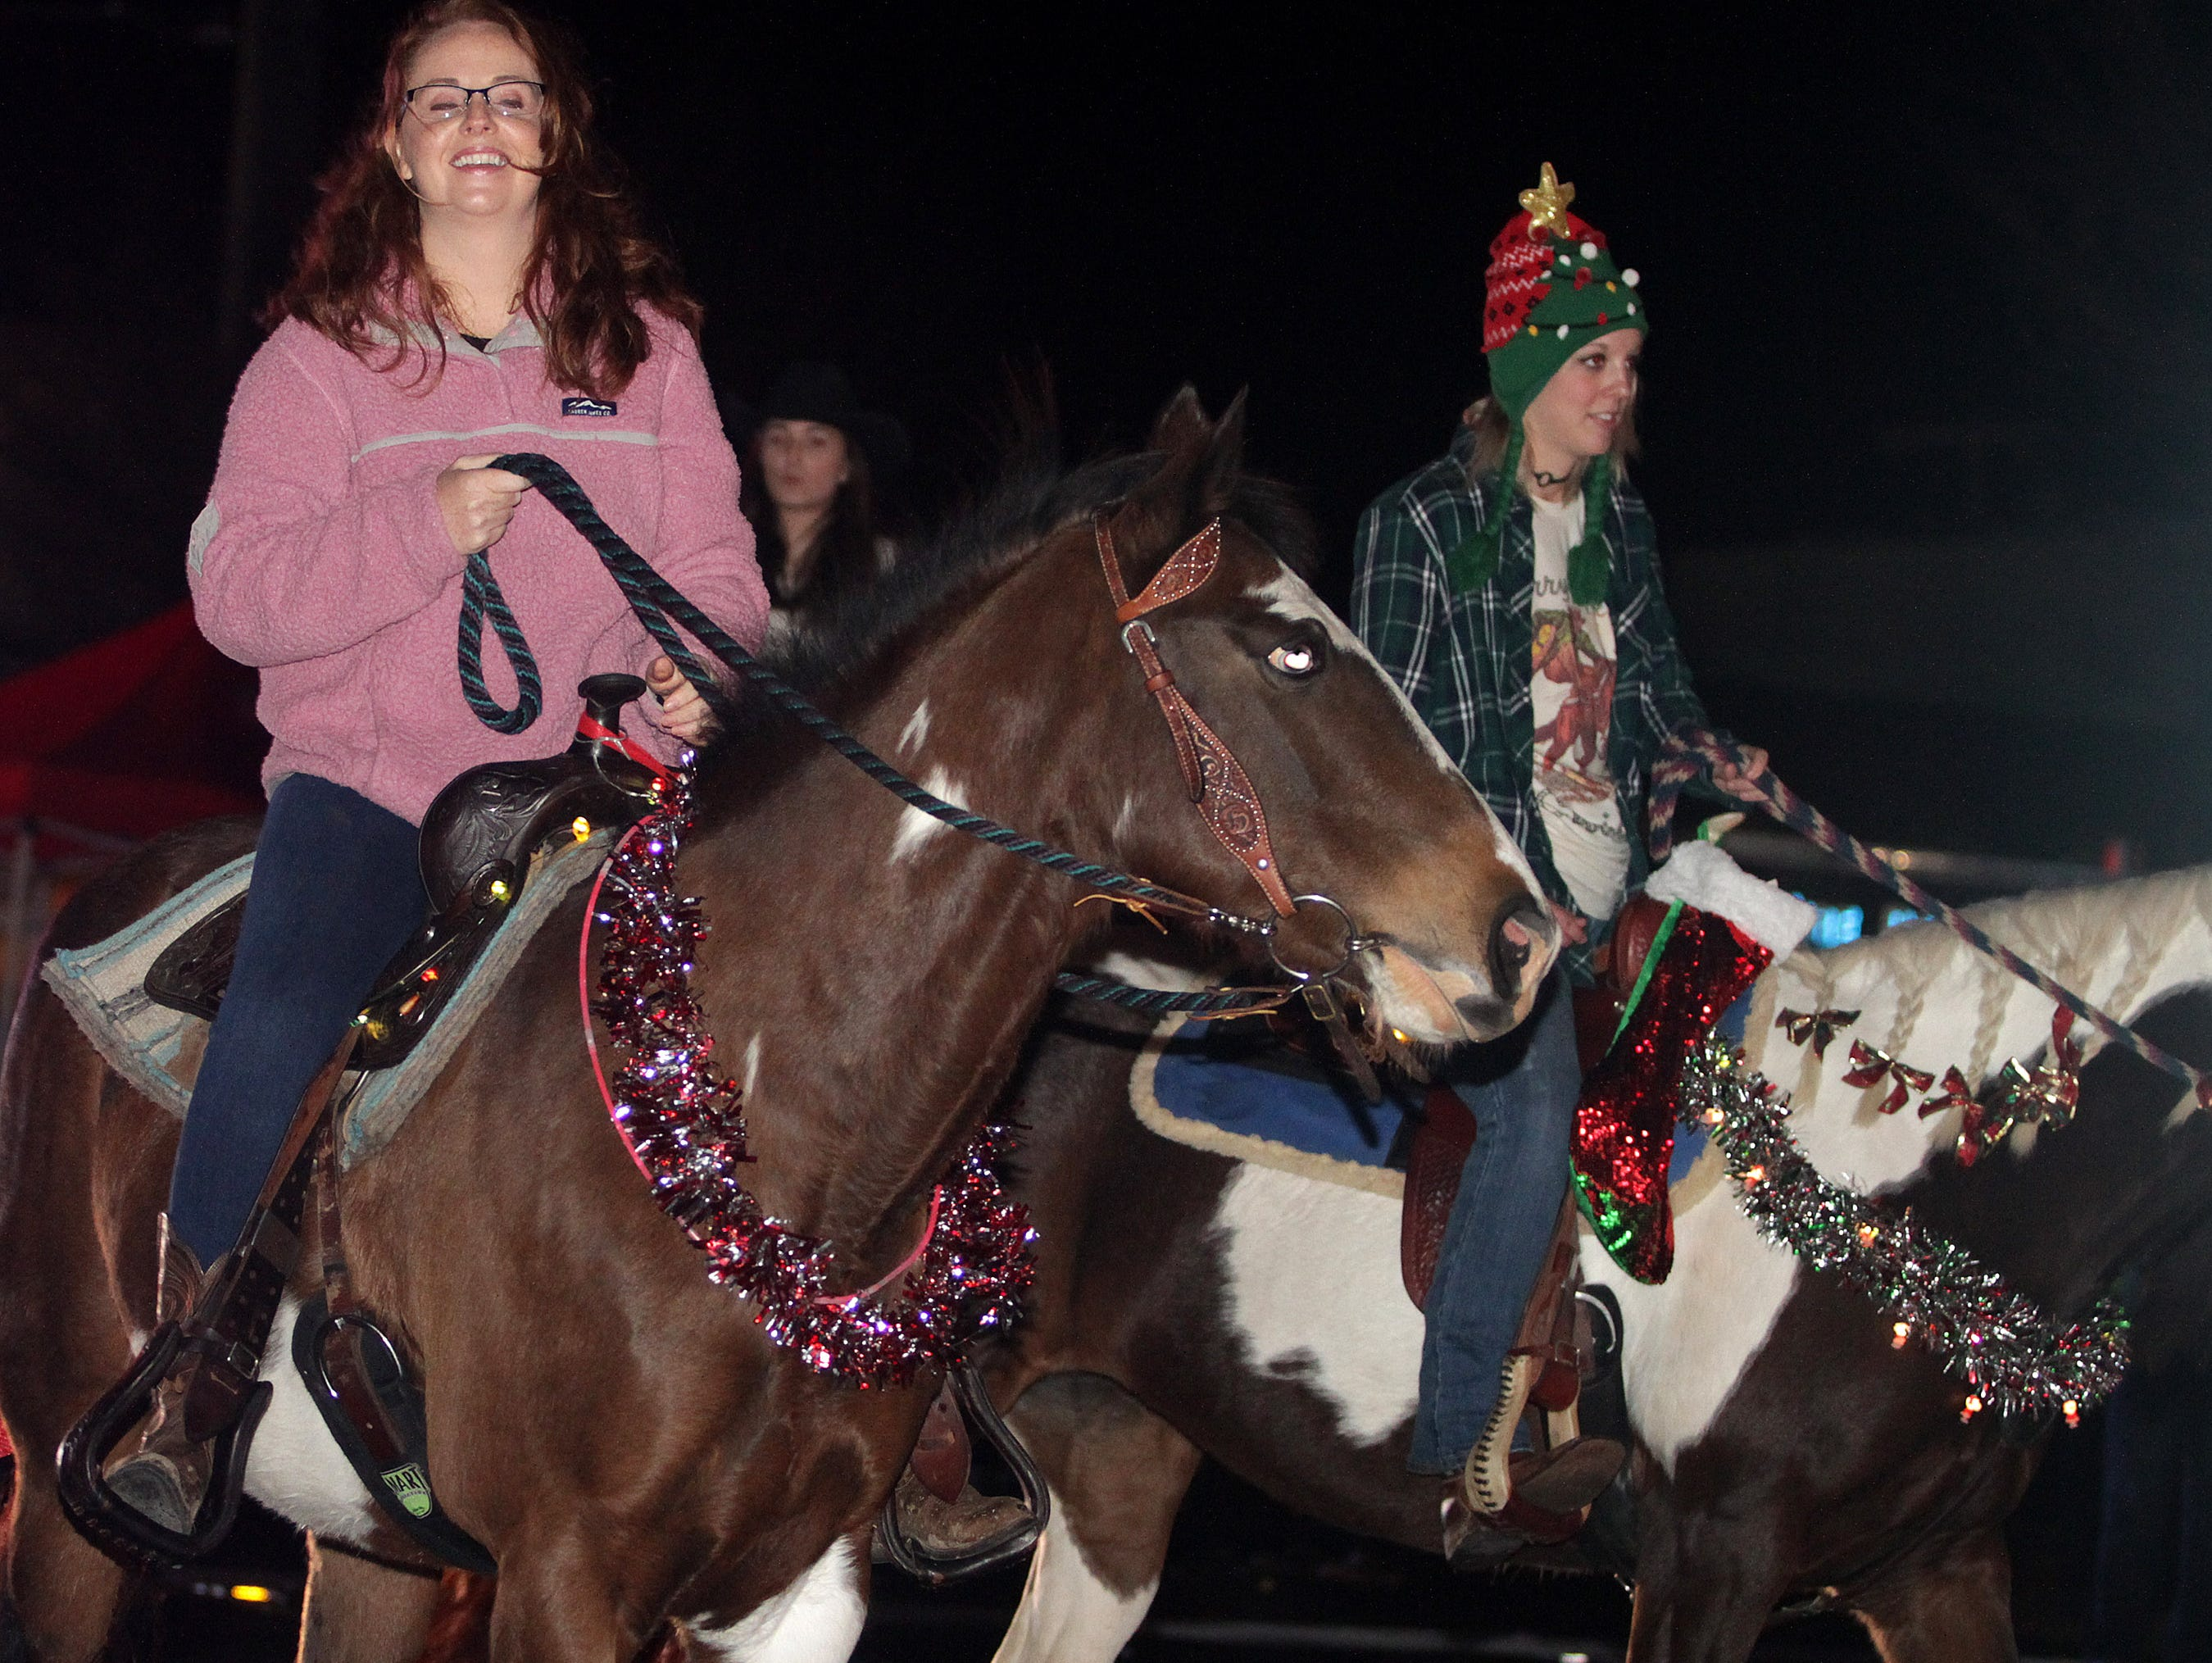 Folks ride horses at the Ashland City xmas parade on Saturday, December 1, 2018.